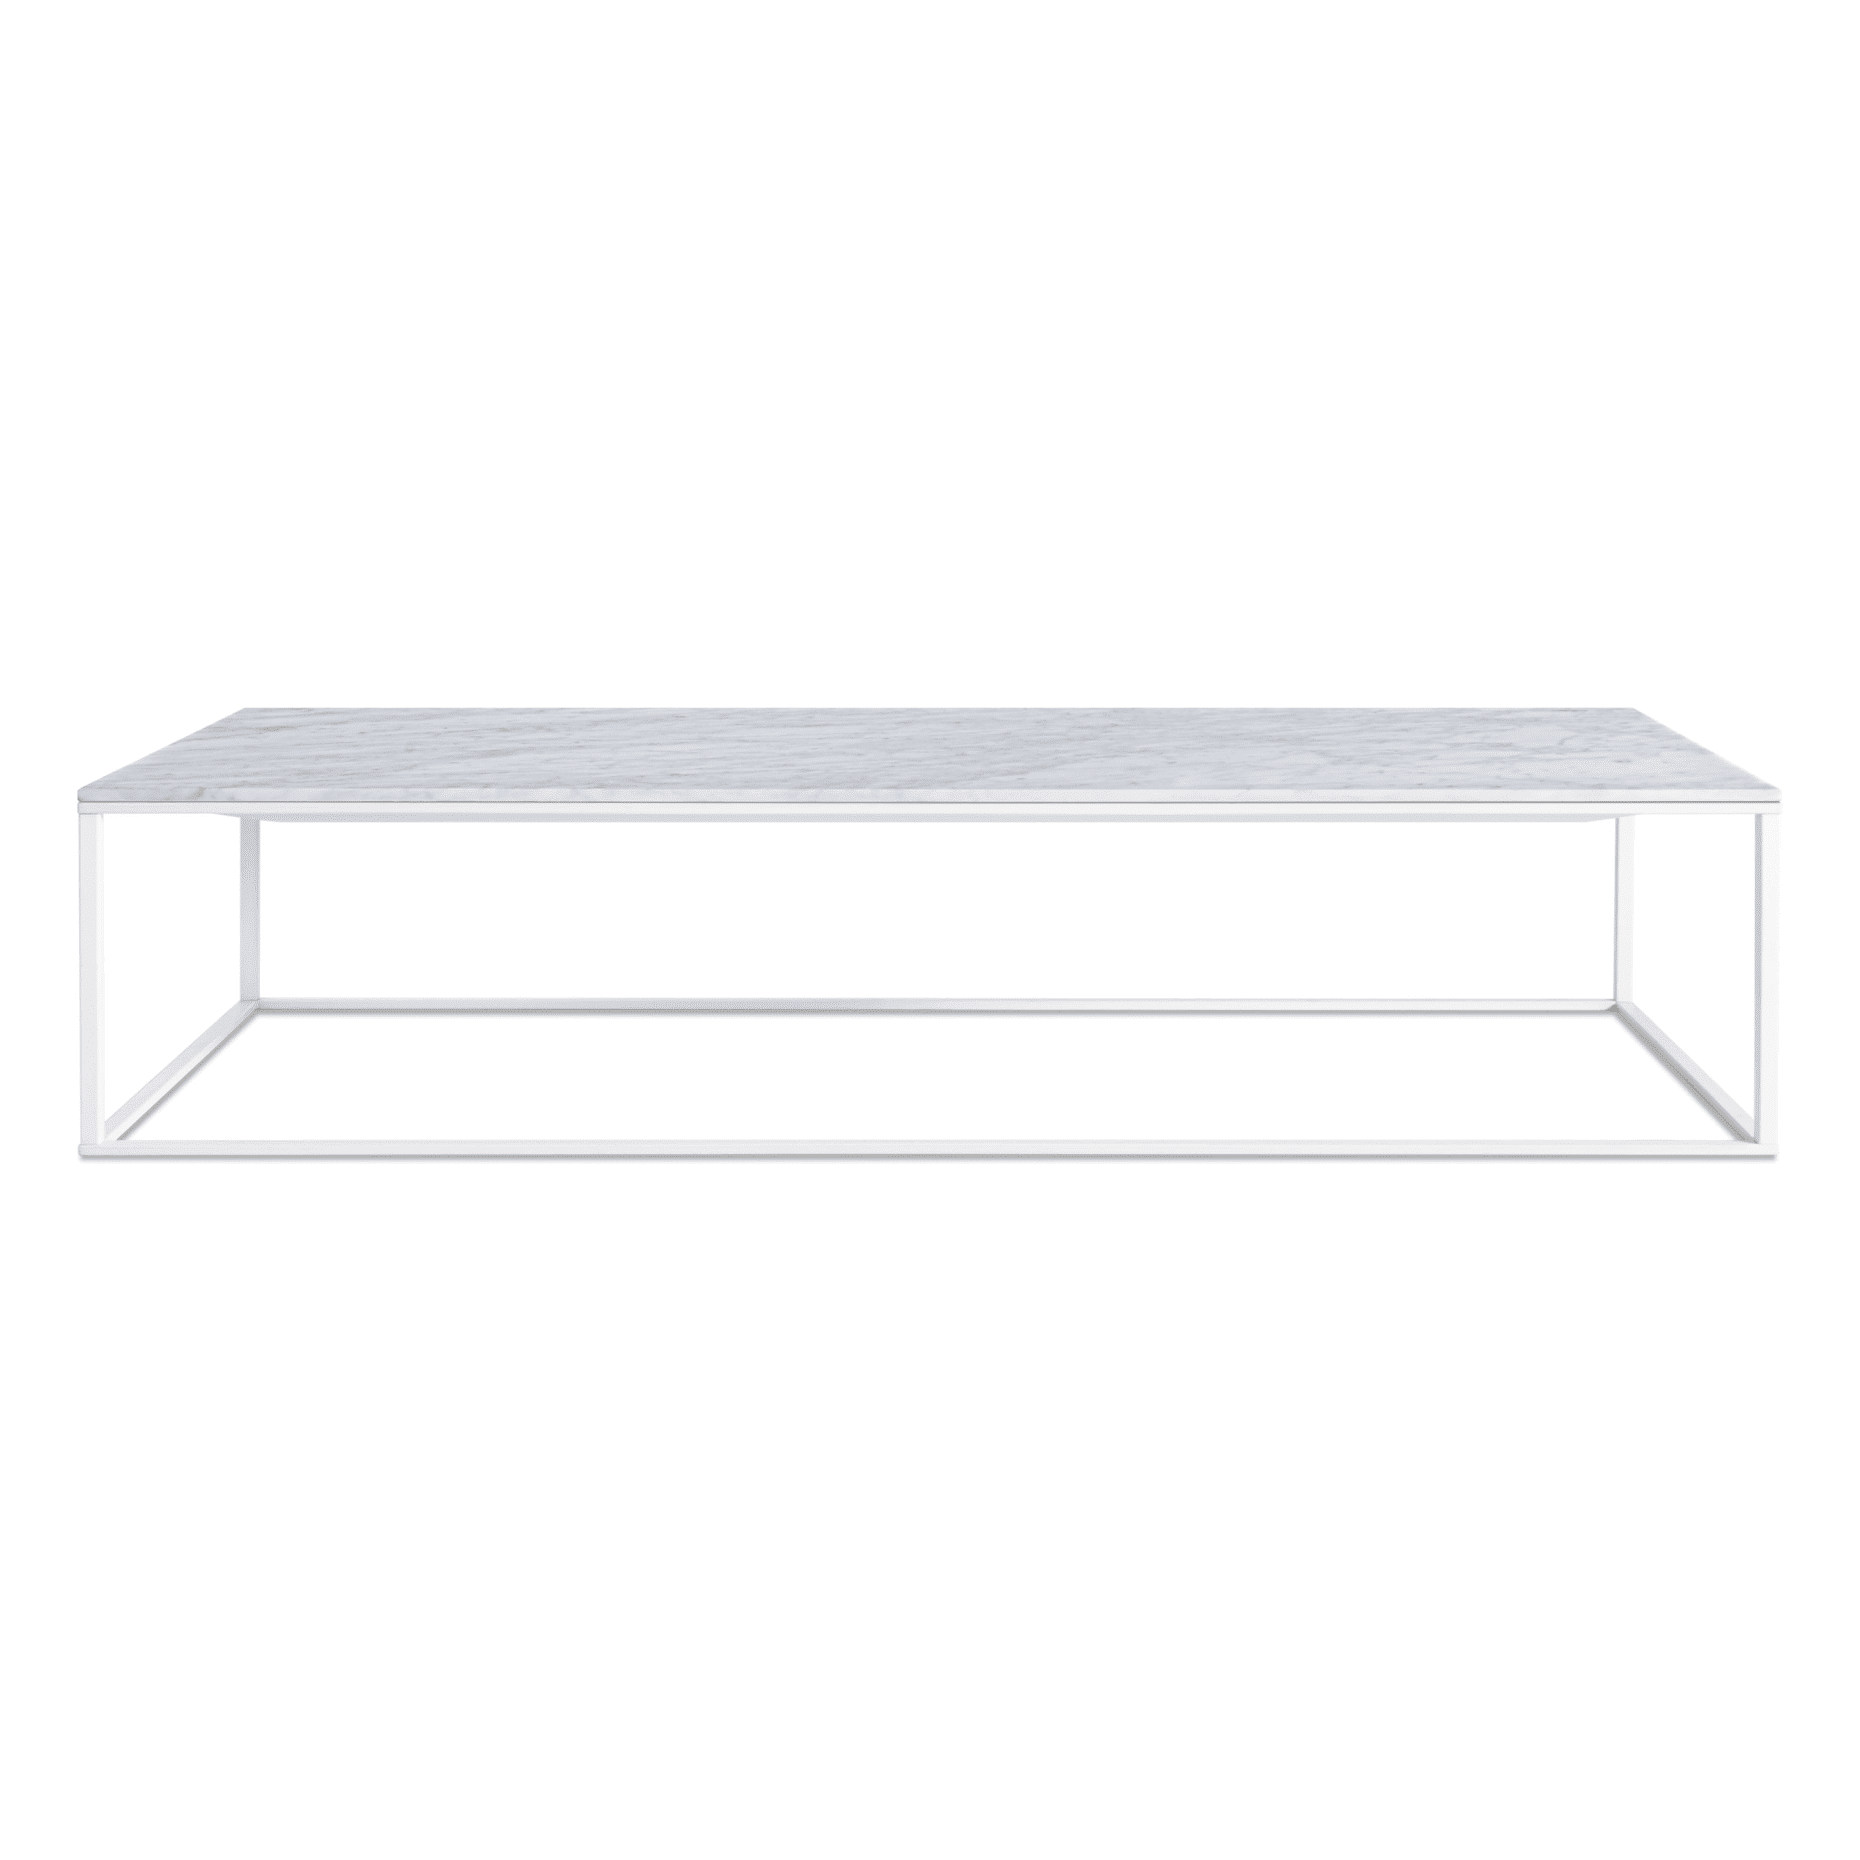 mn1 lcofwh mb minimalista large coffee table white marble